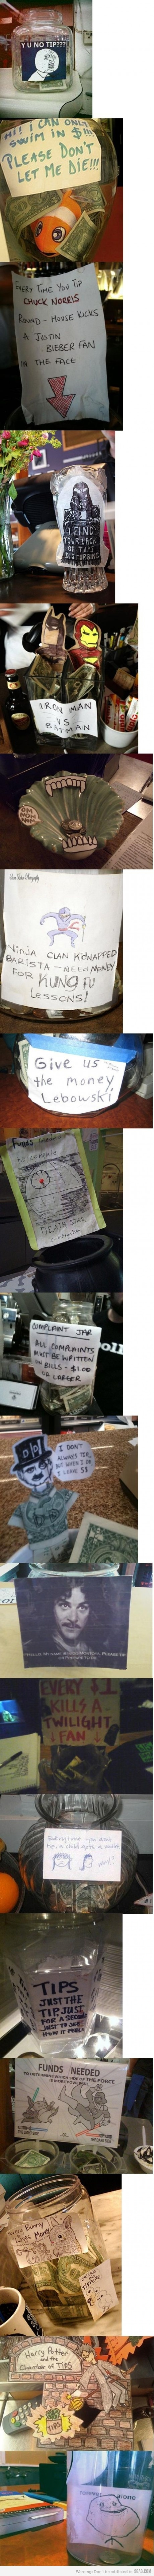 I love the Chuck Norris tip jar! These are hilarious :)